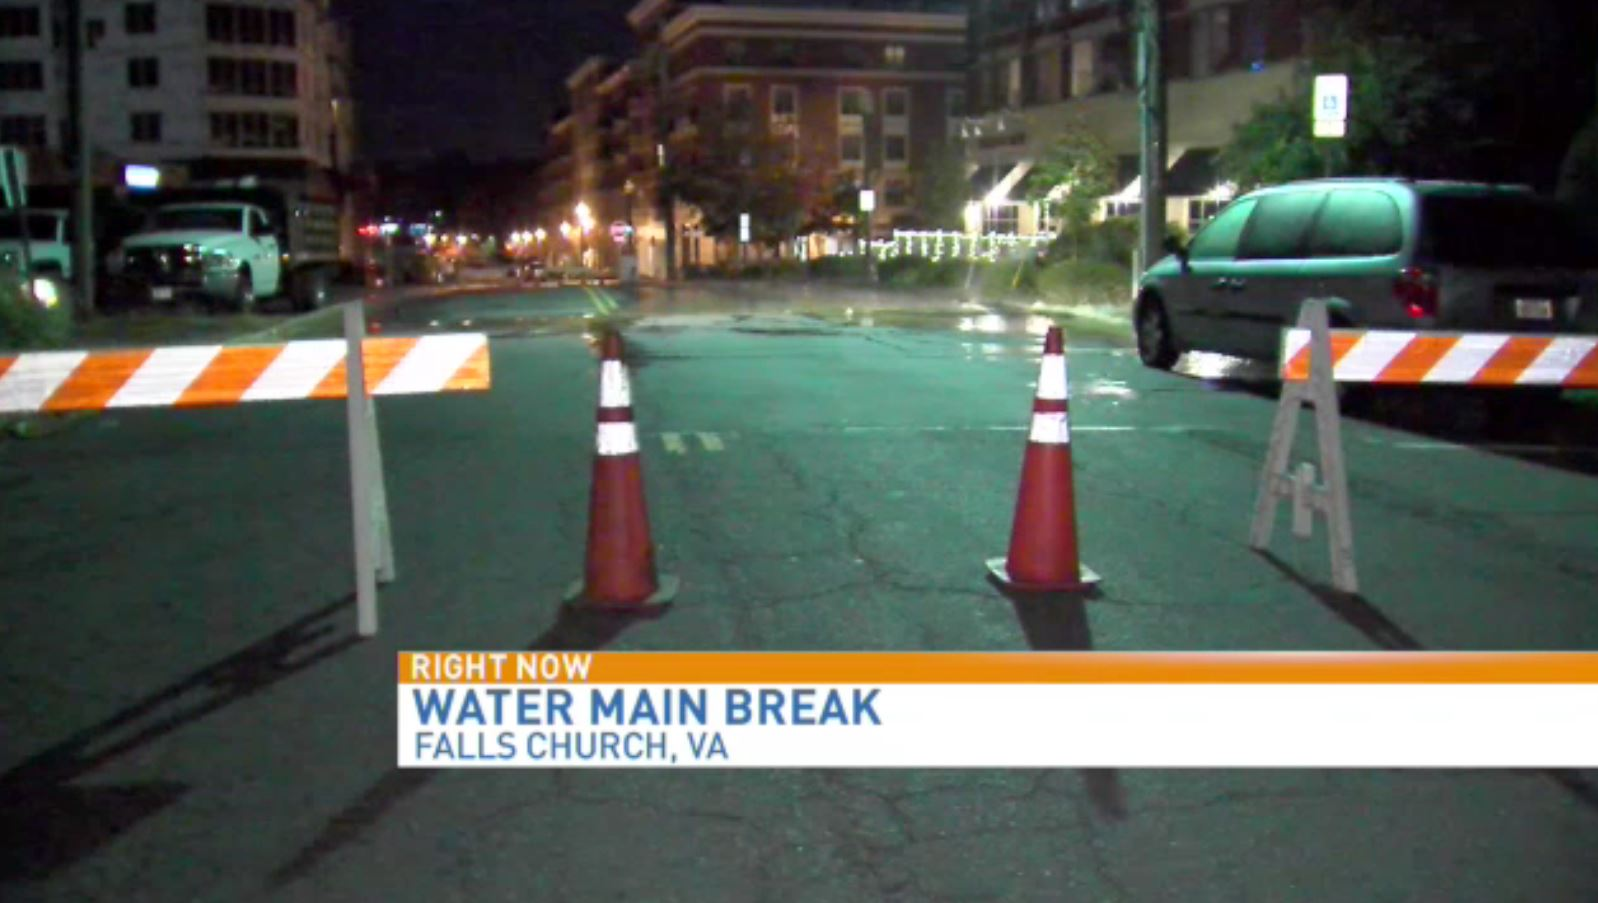 water main break closes streets in falls church wjla water main break in falls church closes streets wjla